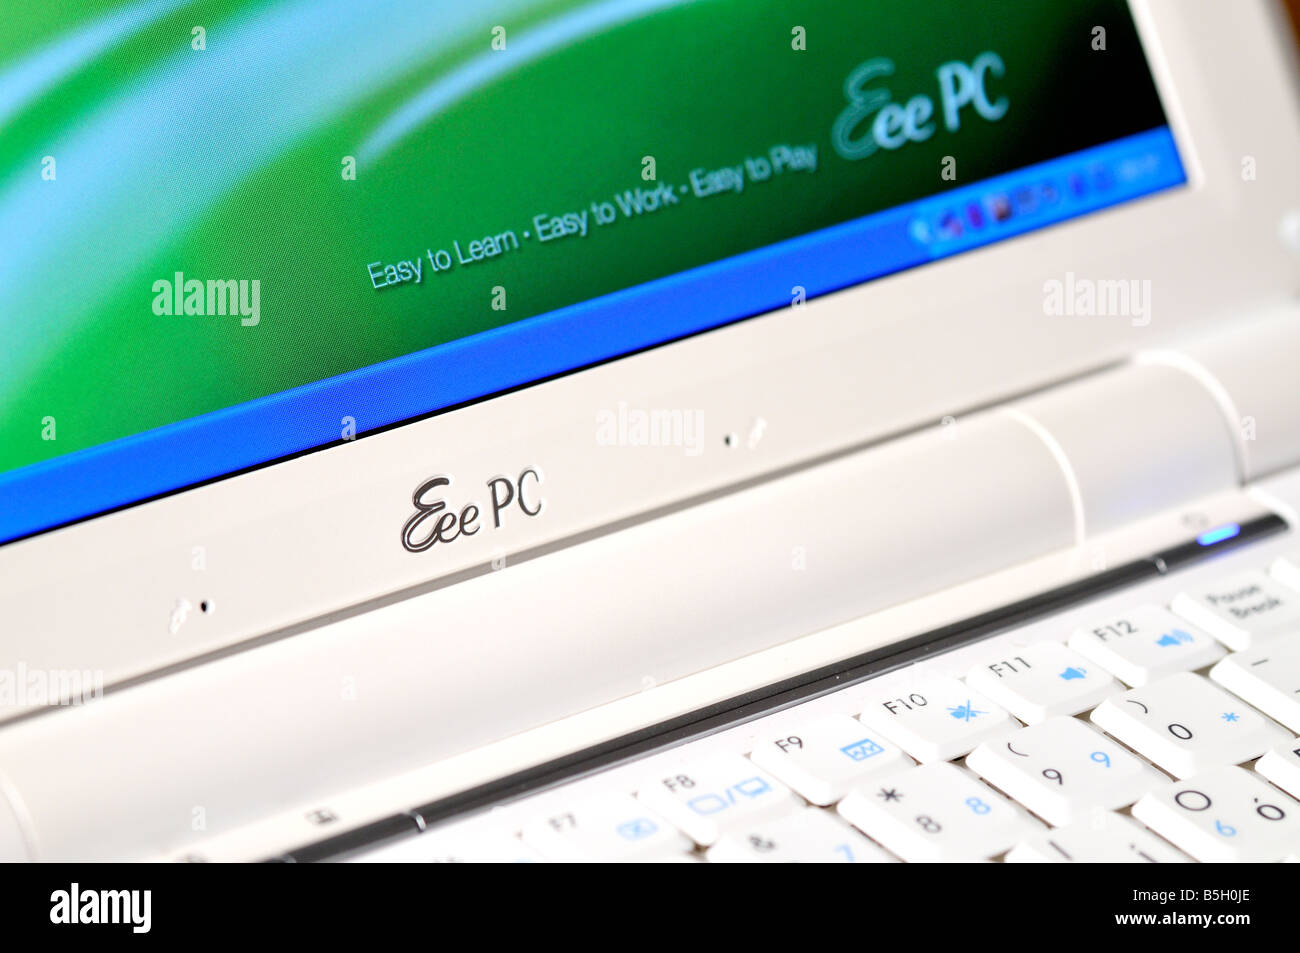 ASUS Eee PC closeup showing partial keyboard and screen - Stock Image